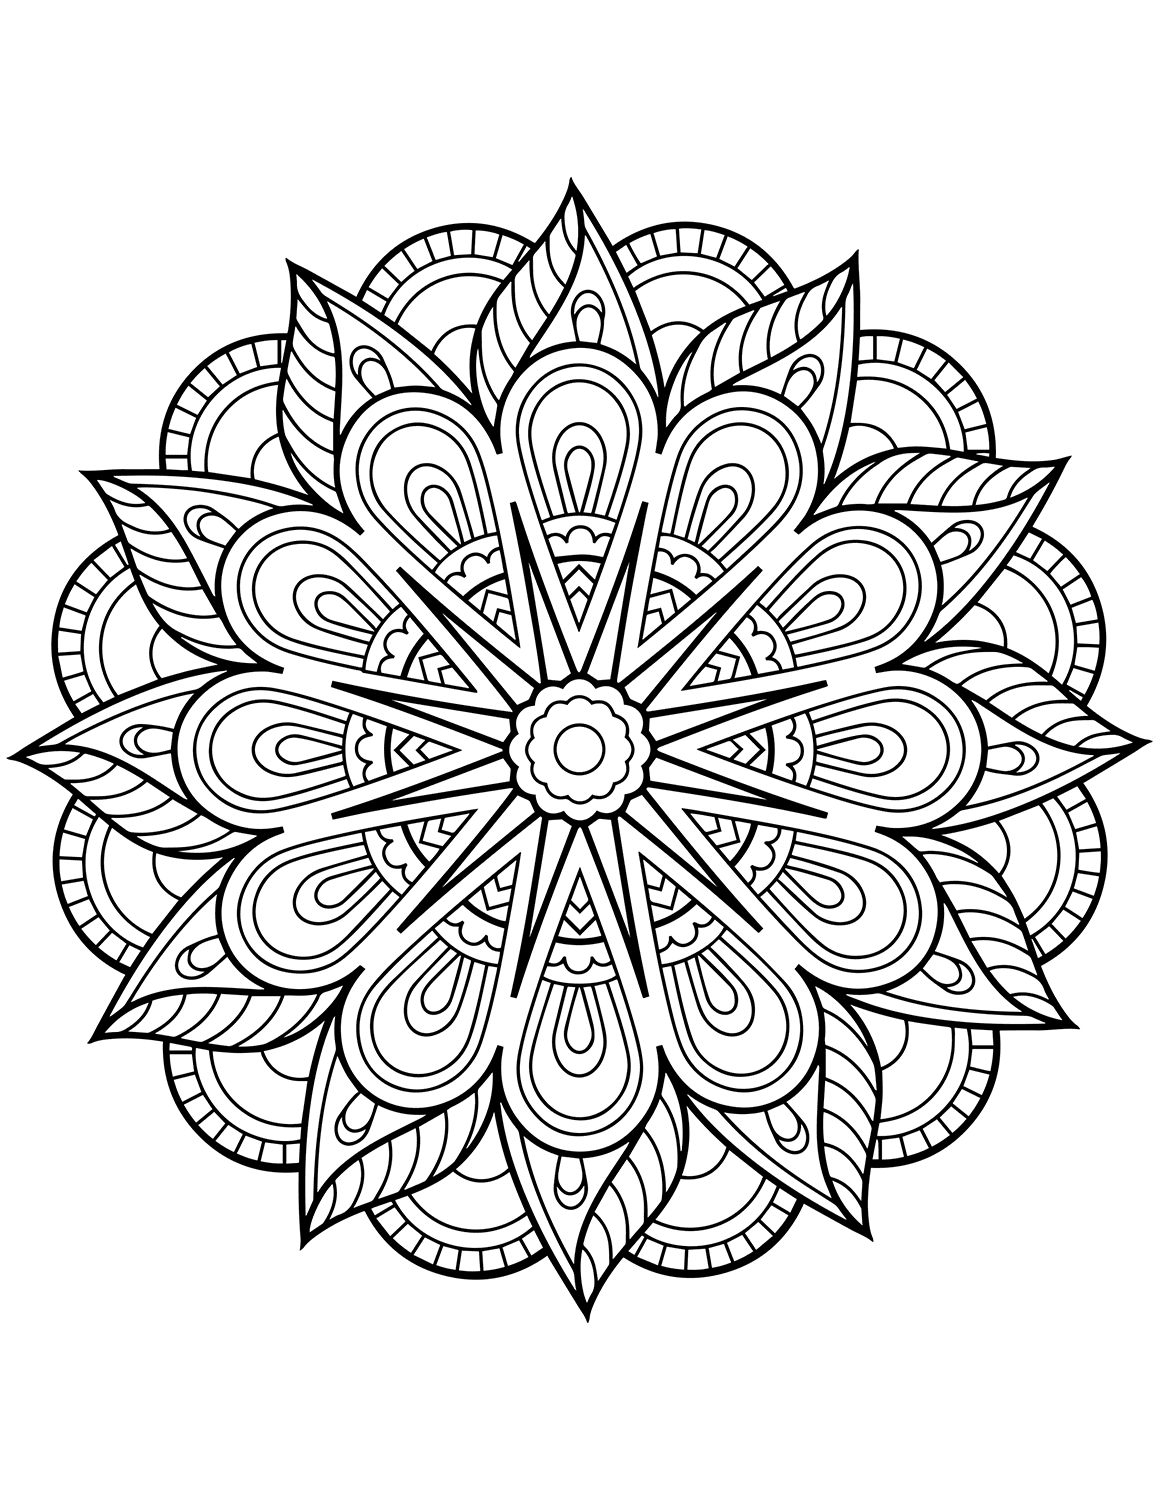 coloring mandala with color flower mandala coloring pages  best coloring pages for kids color coloring with mandala